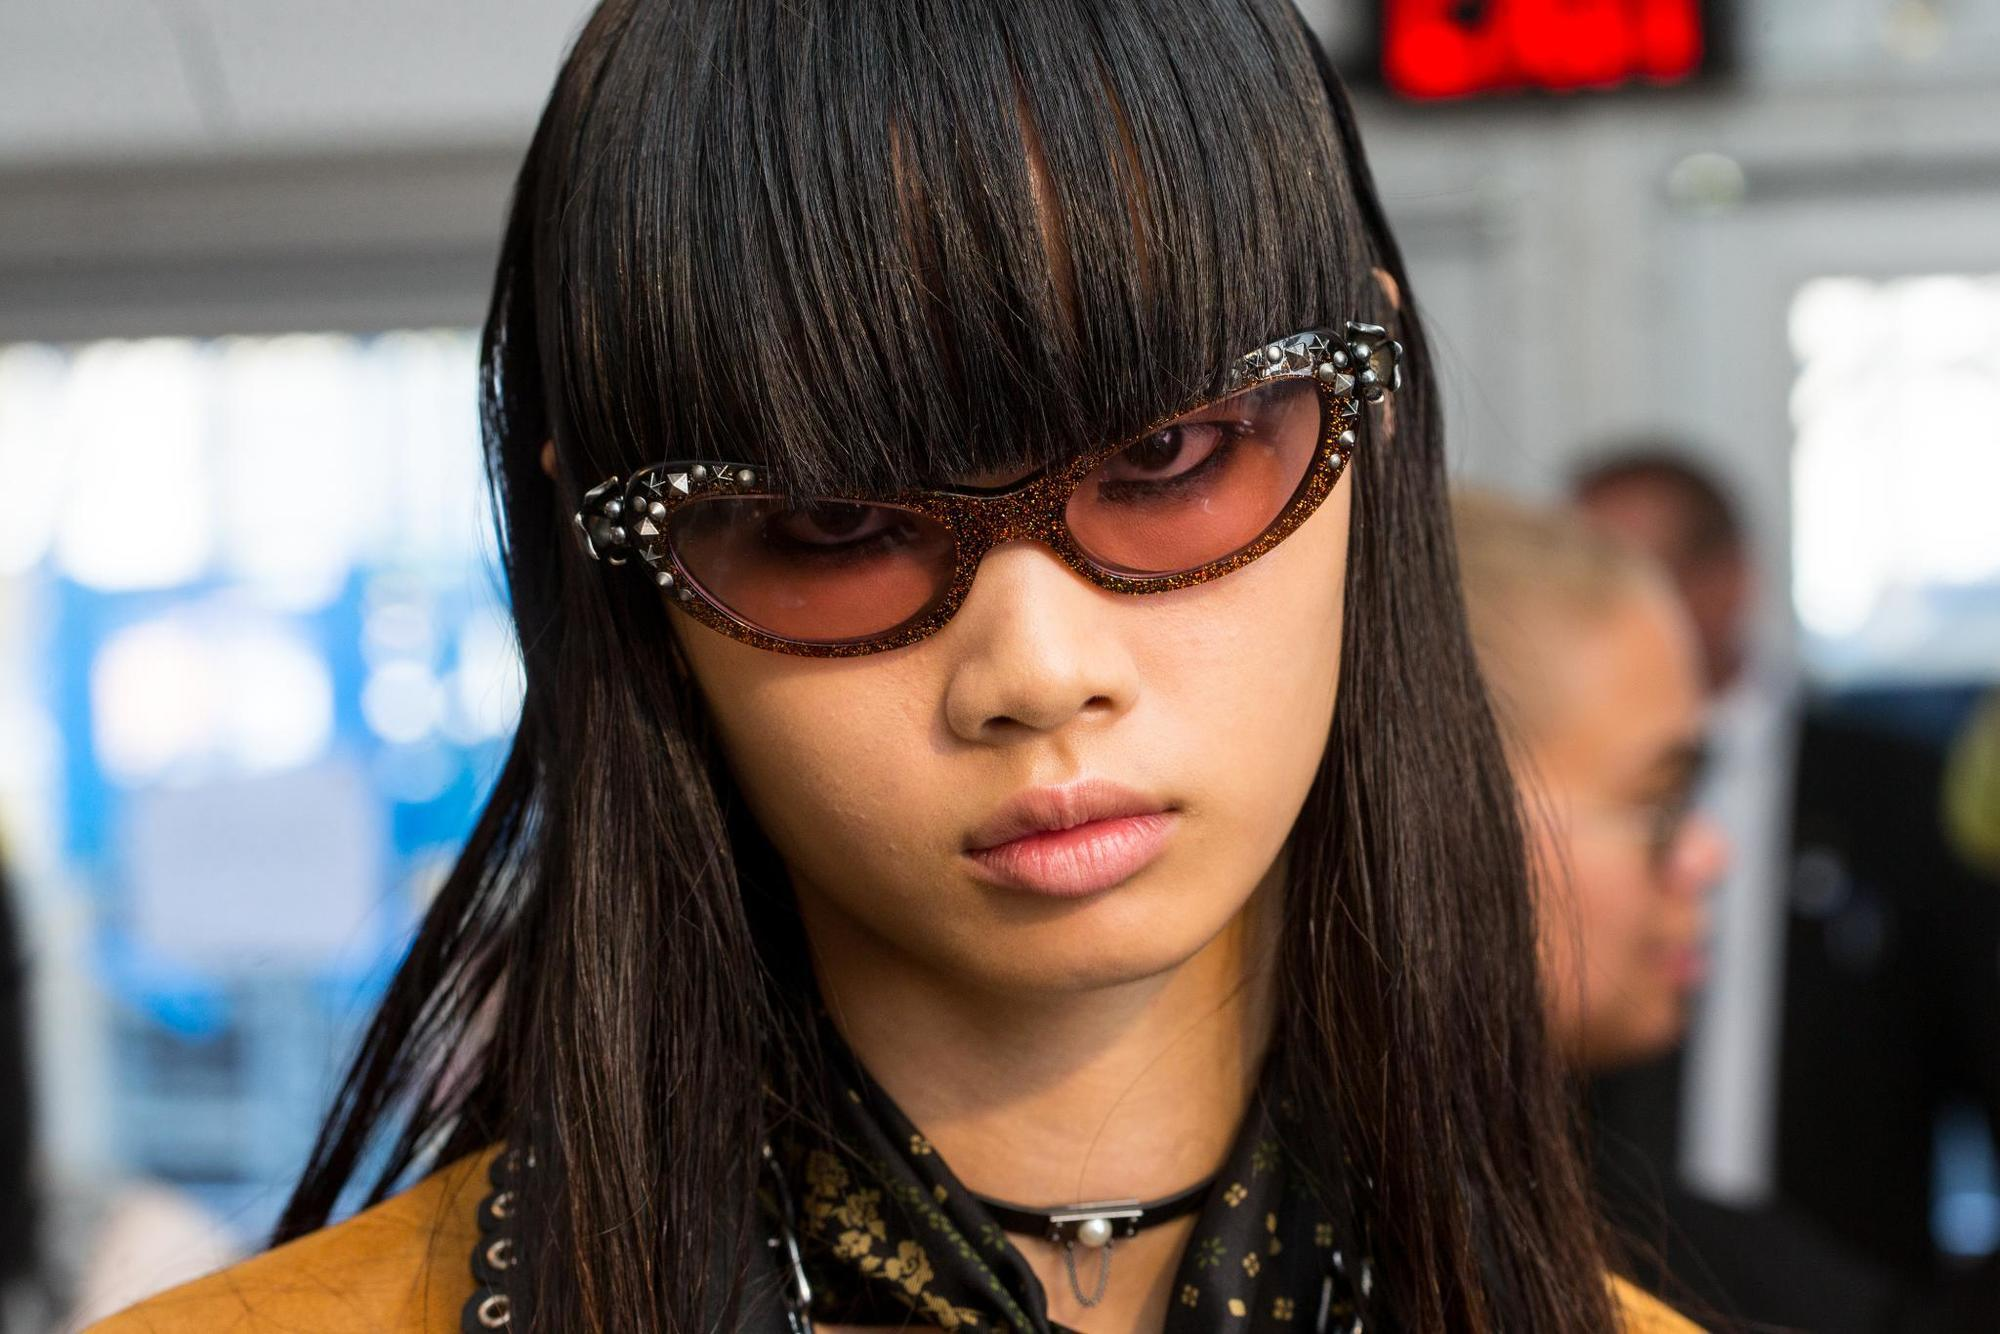 Bangs are one the biggest new hair trends of 2017